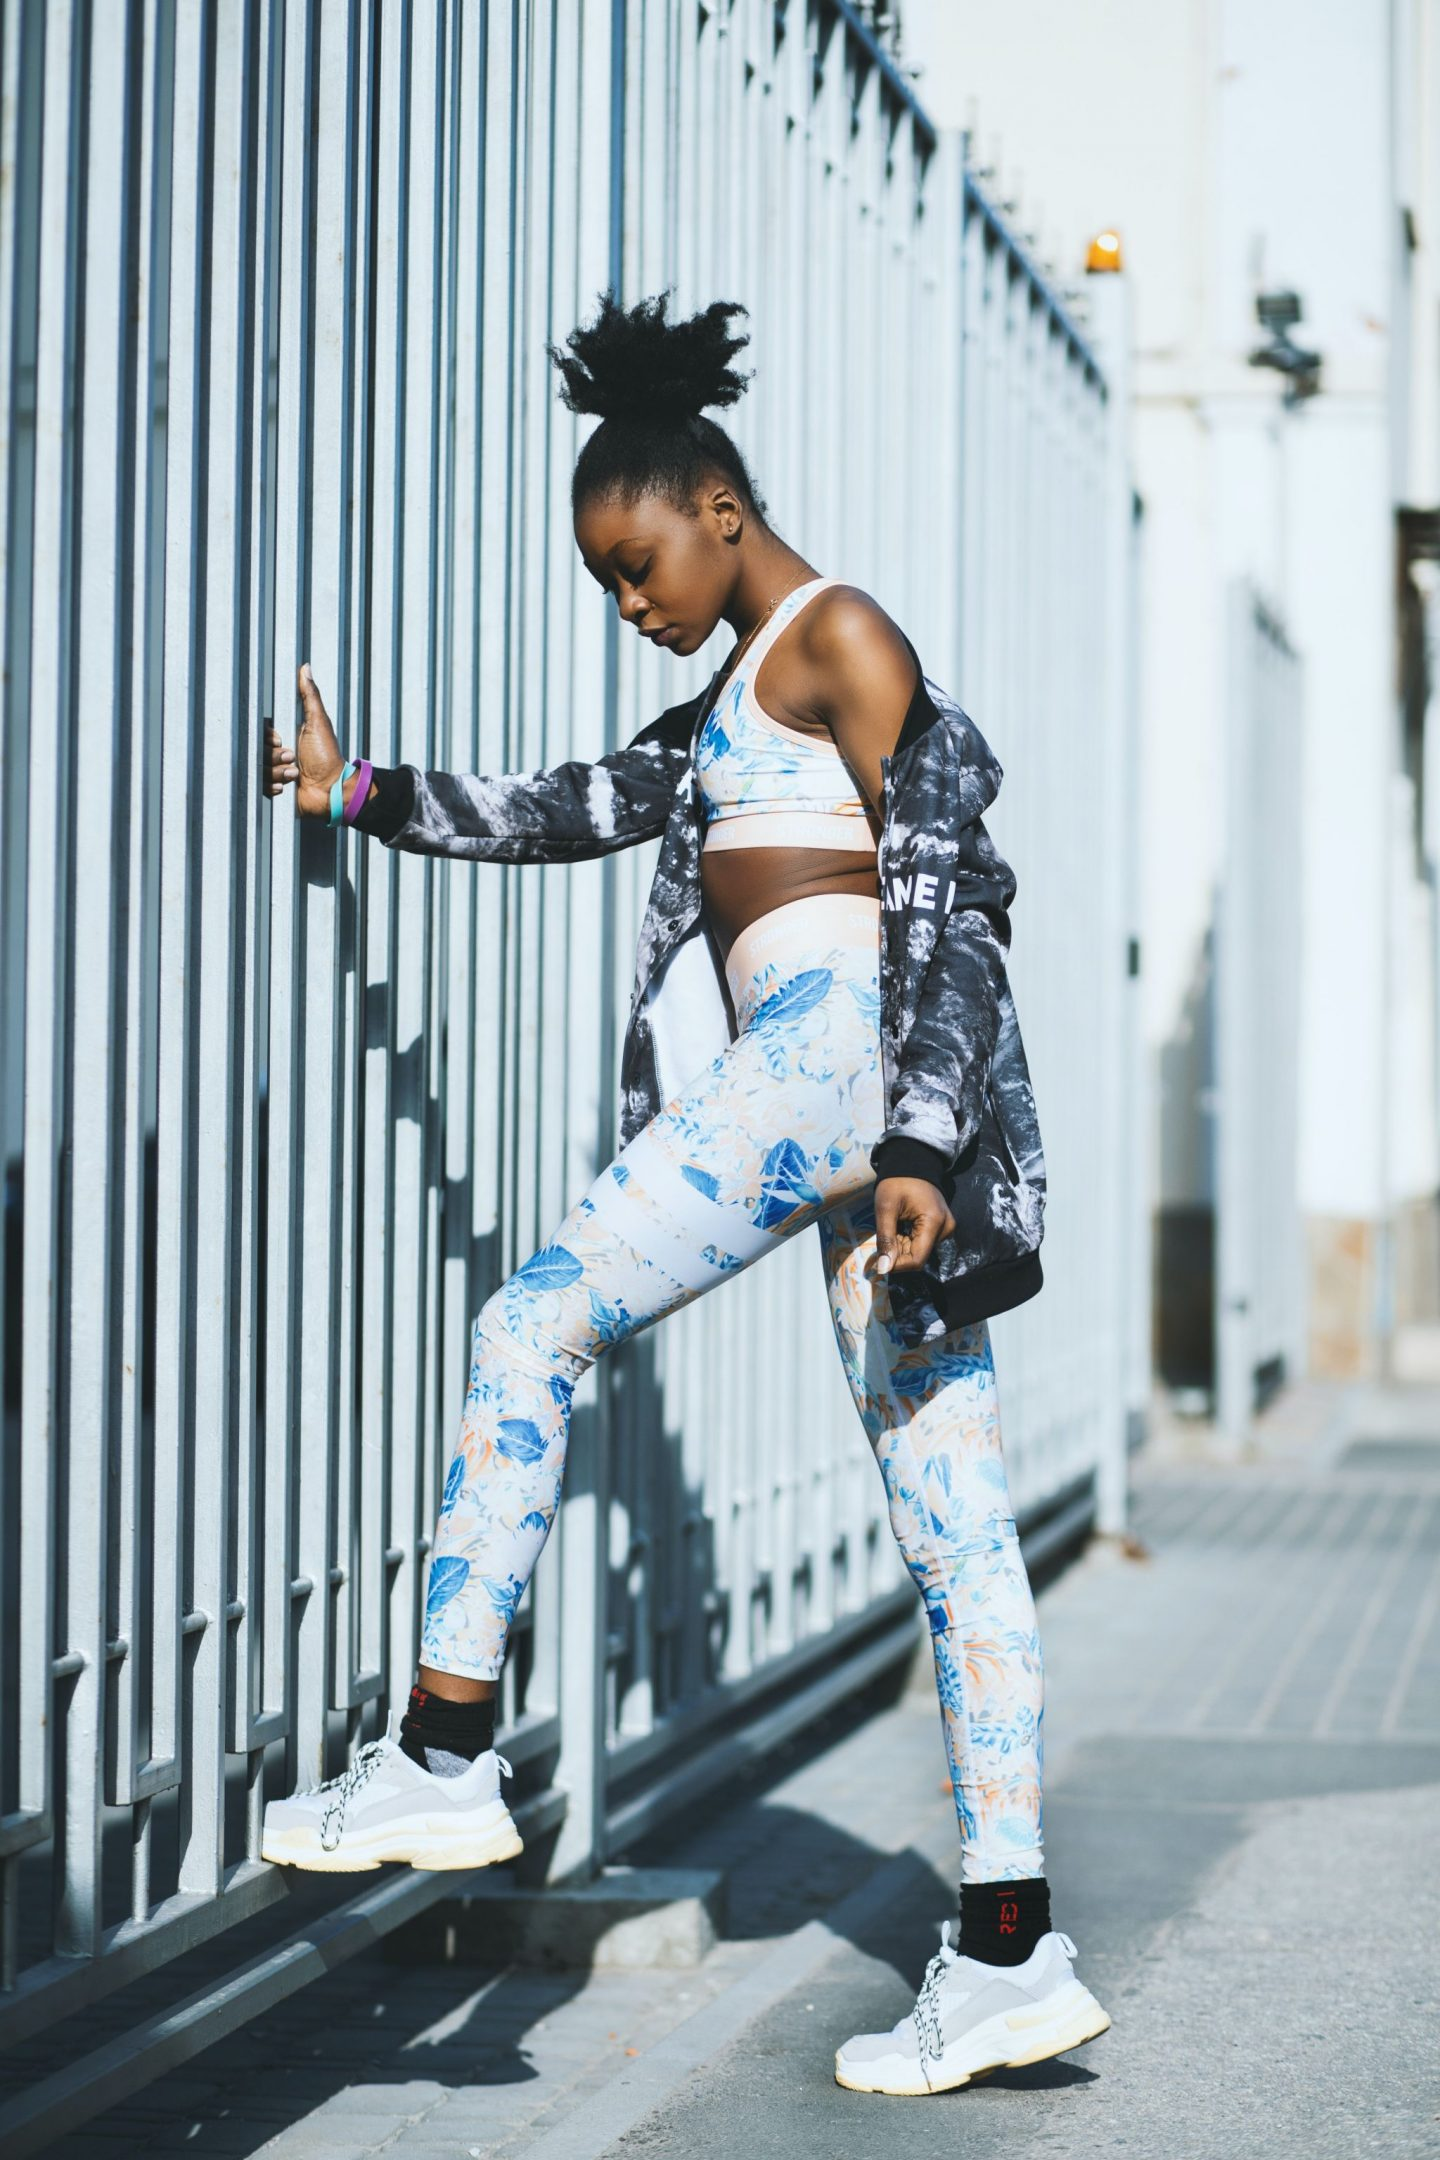 LUXURY ATHLEISURE TRENDS TO EMBRACE RIGHT NOW